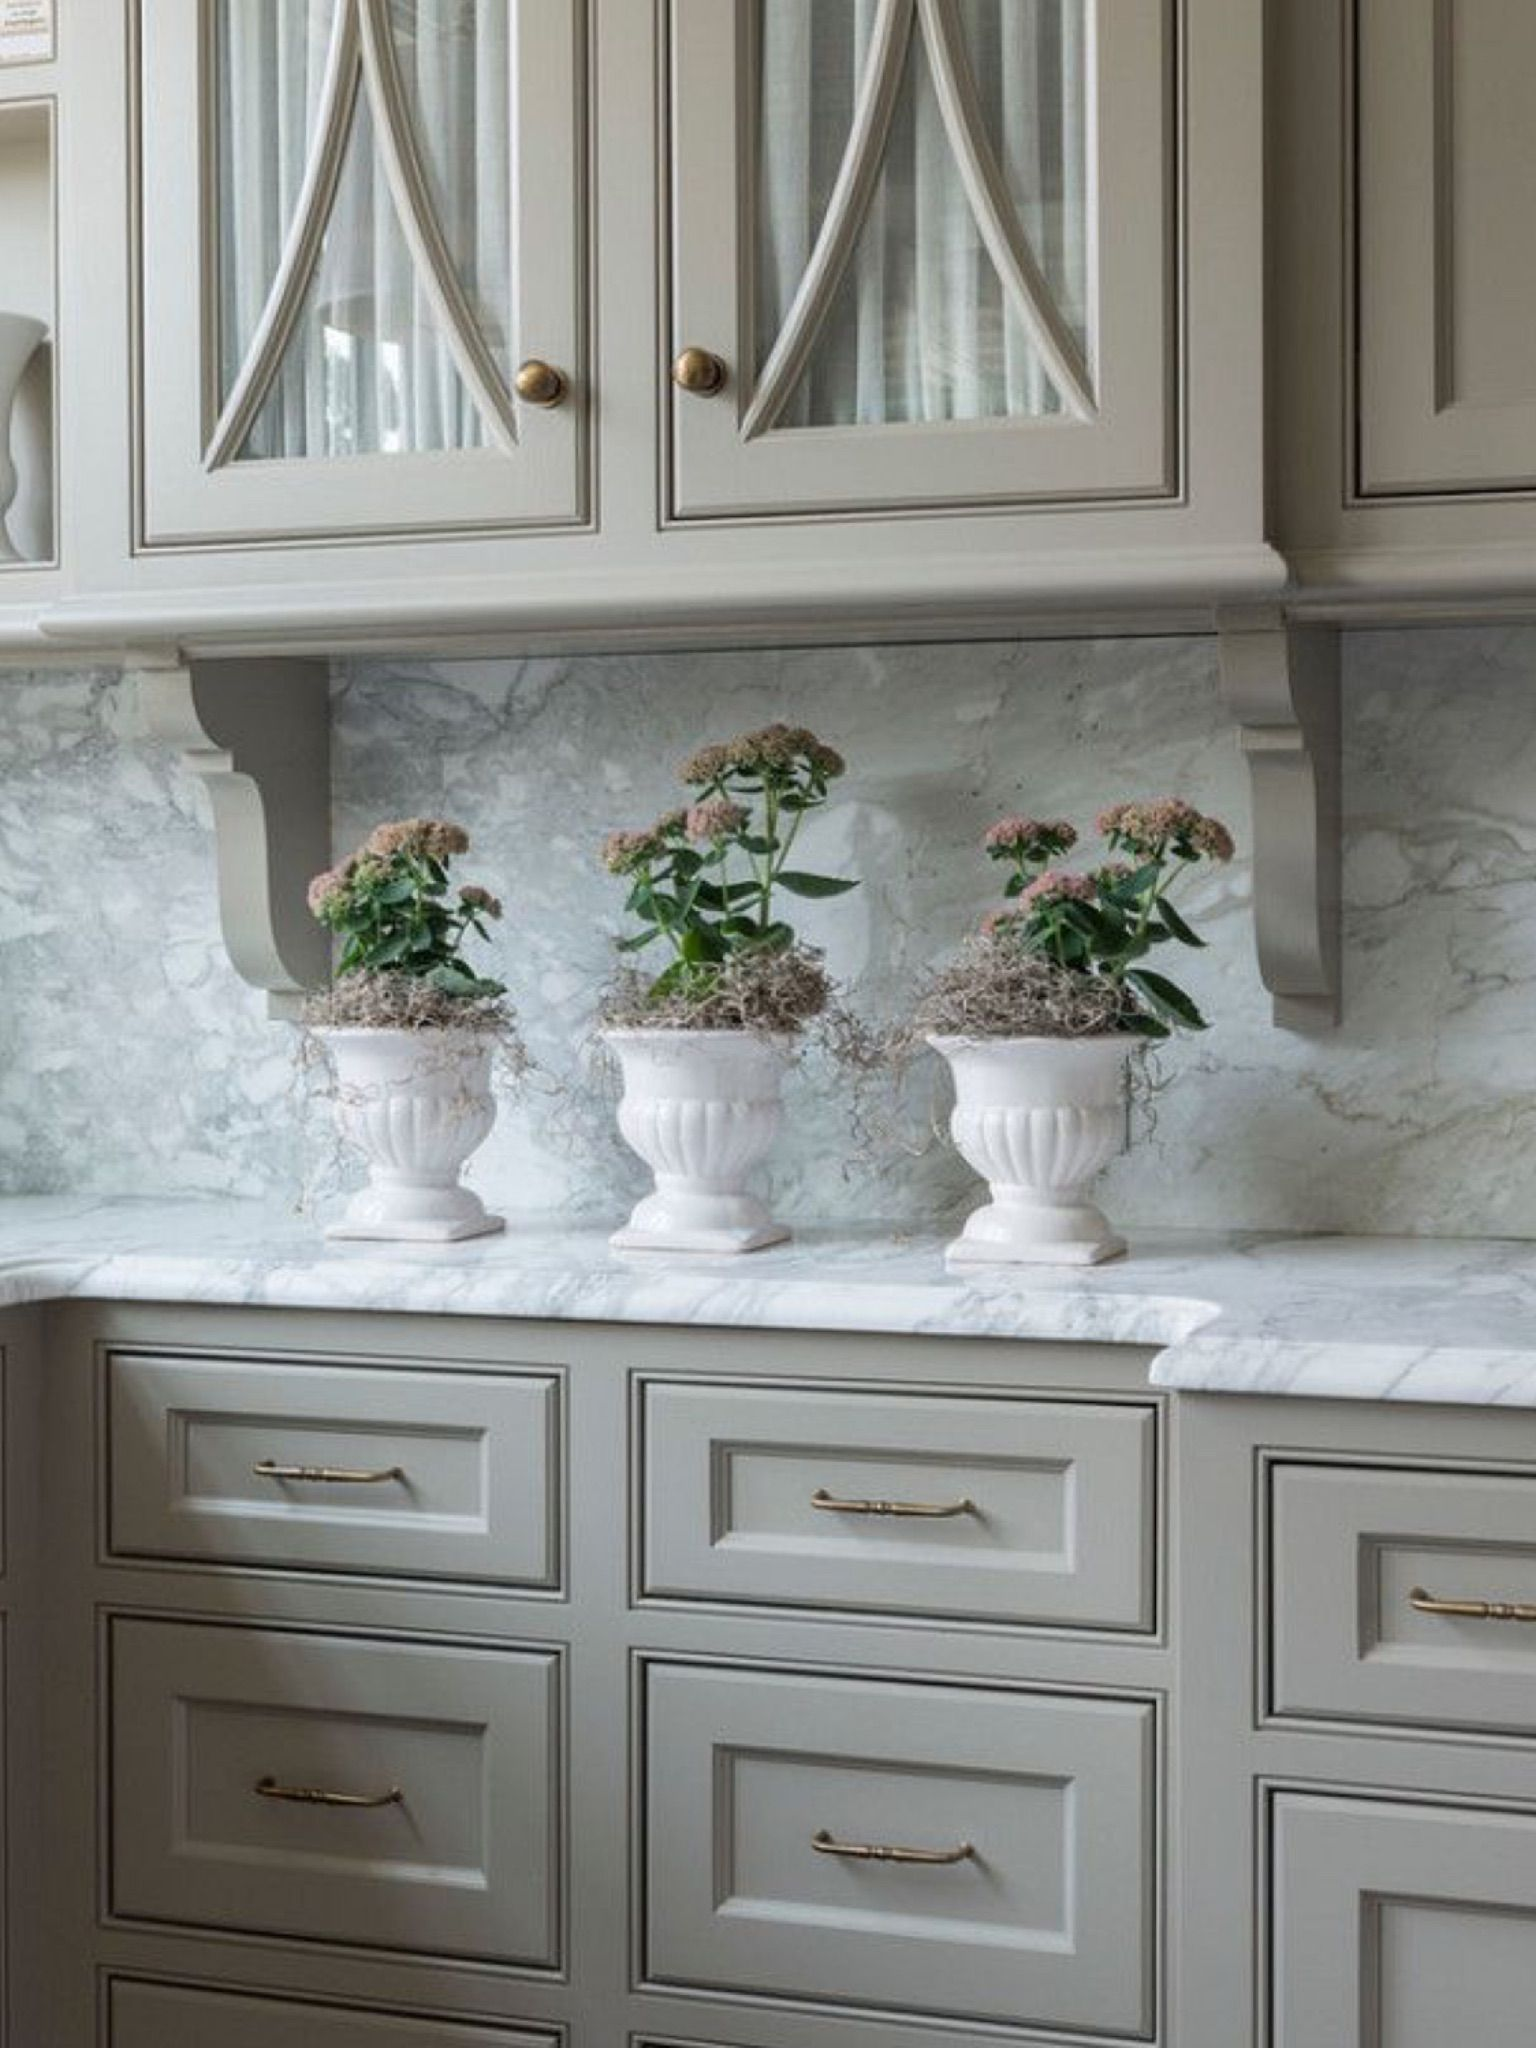 Light grey kitchen cabinets subway tile backsplash kitchen light grey kitchen cabinets subway tile backsplash kitchen pinterest light grey kitchens grey kitchen cabinets and subway tile backsplash dailygadgetfo Gallery